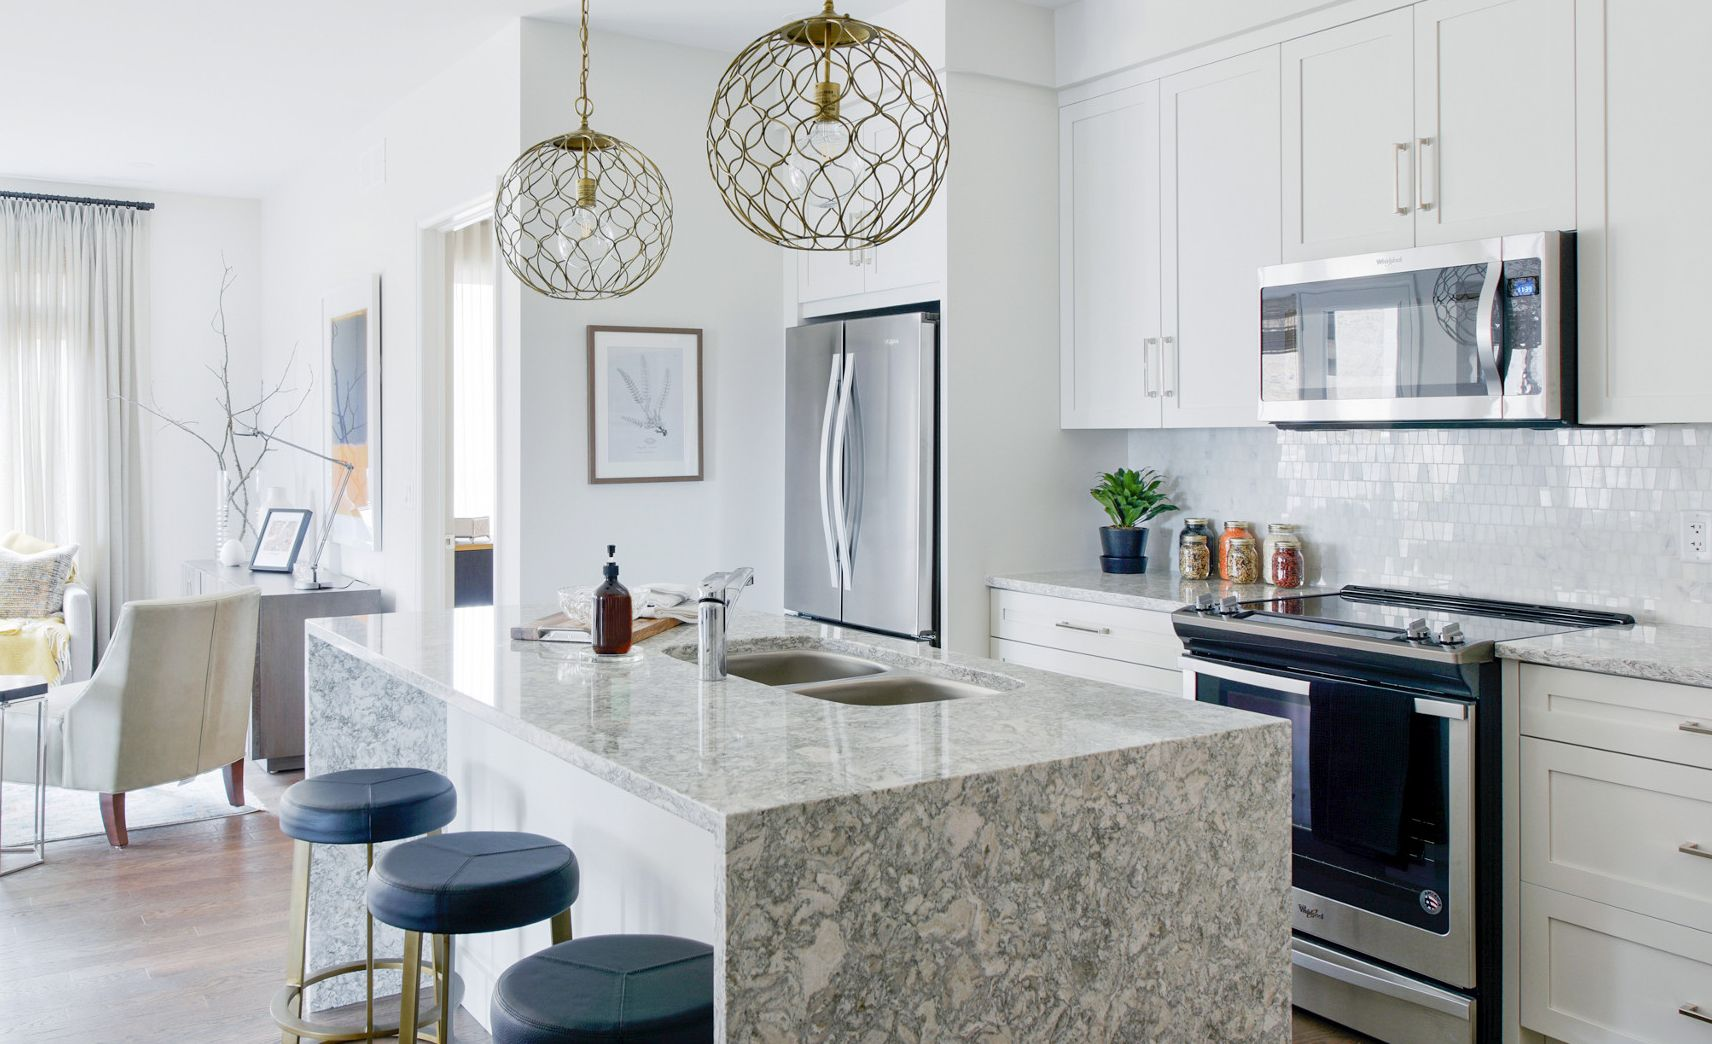 A modern kitchen stands out in this low-rise suite featuring Cambria Berwyn waterfall countertops.